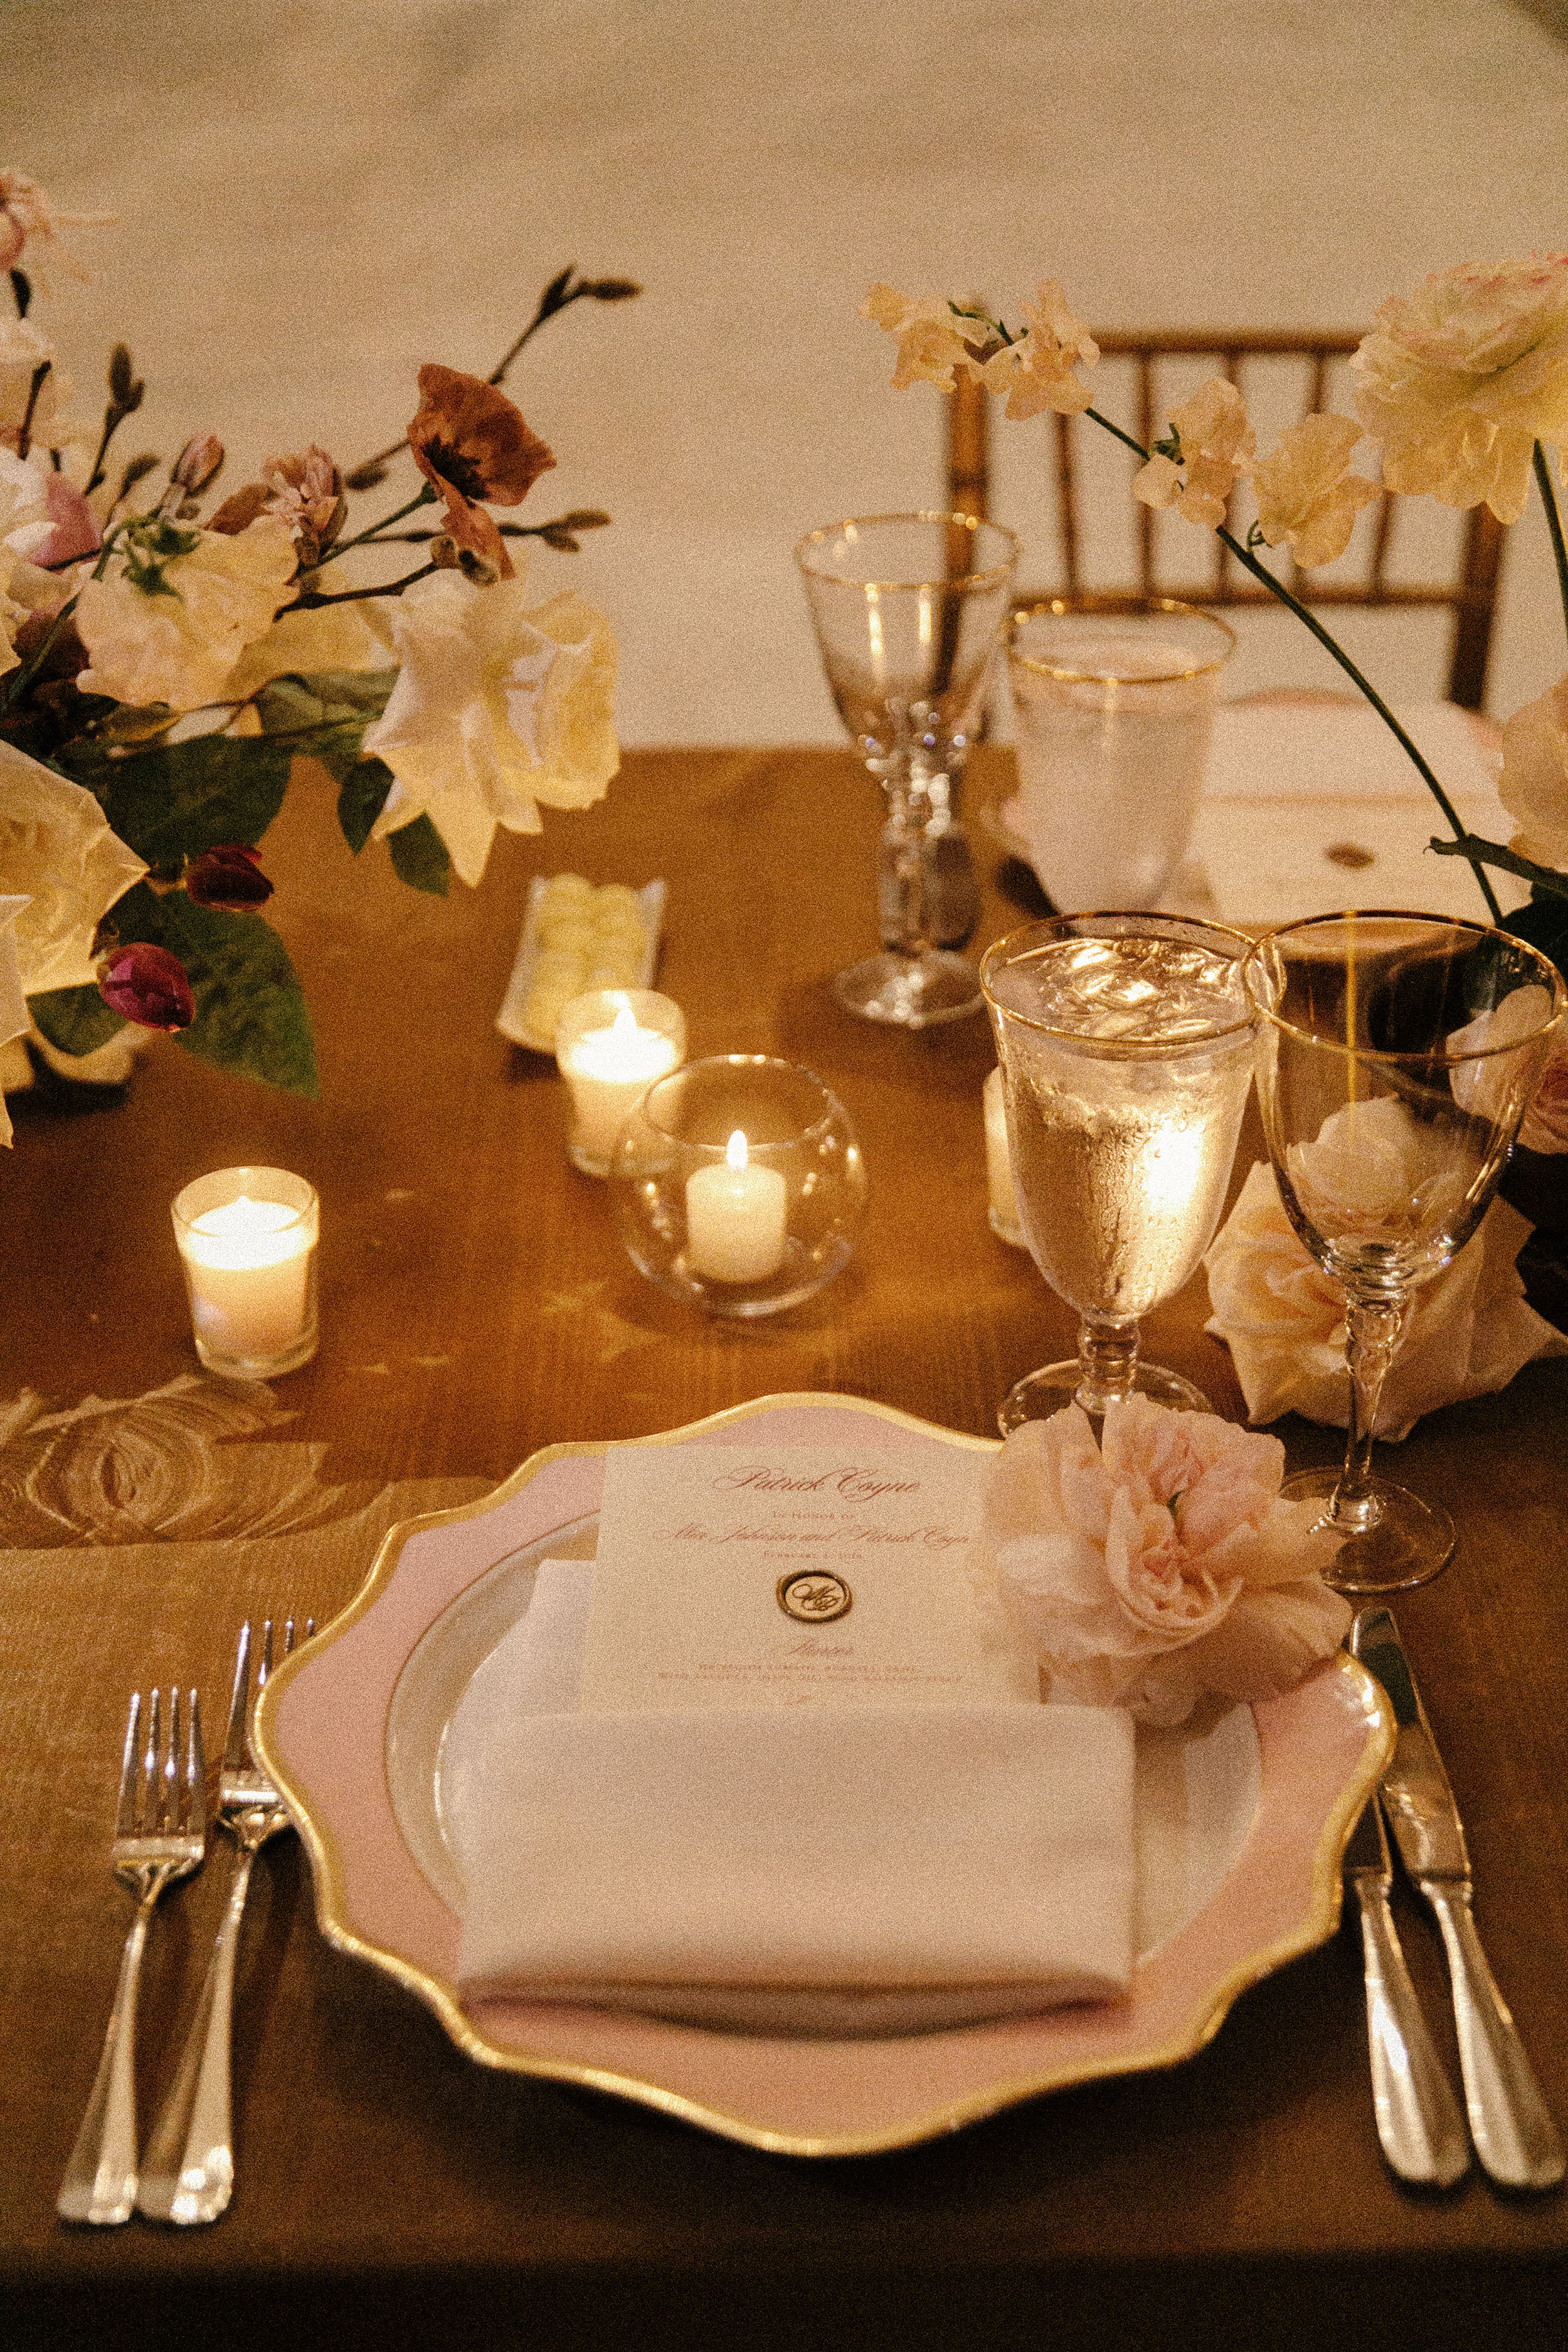 mia patrick wedding place settings with candles